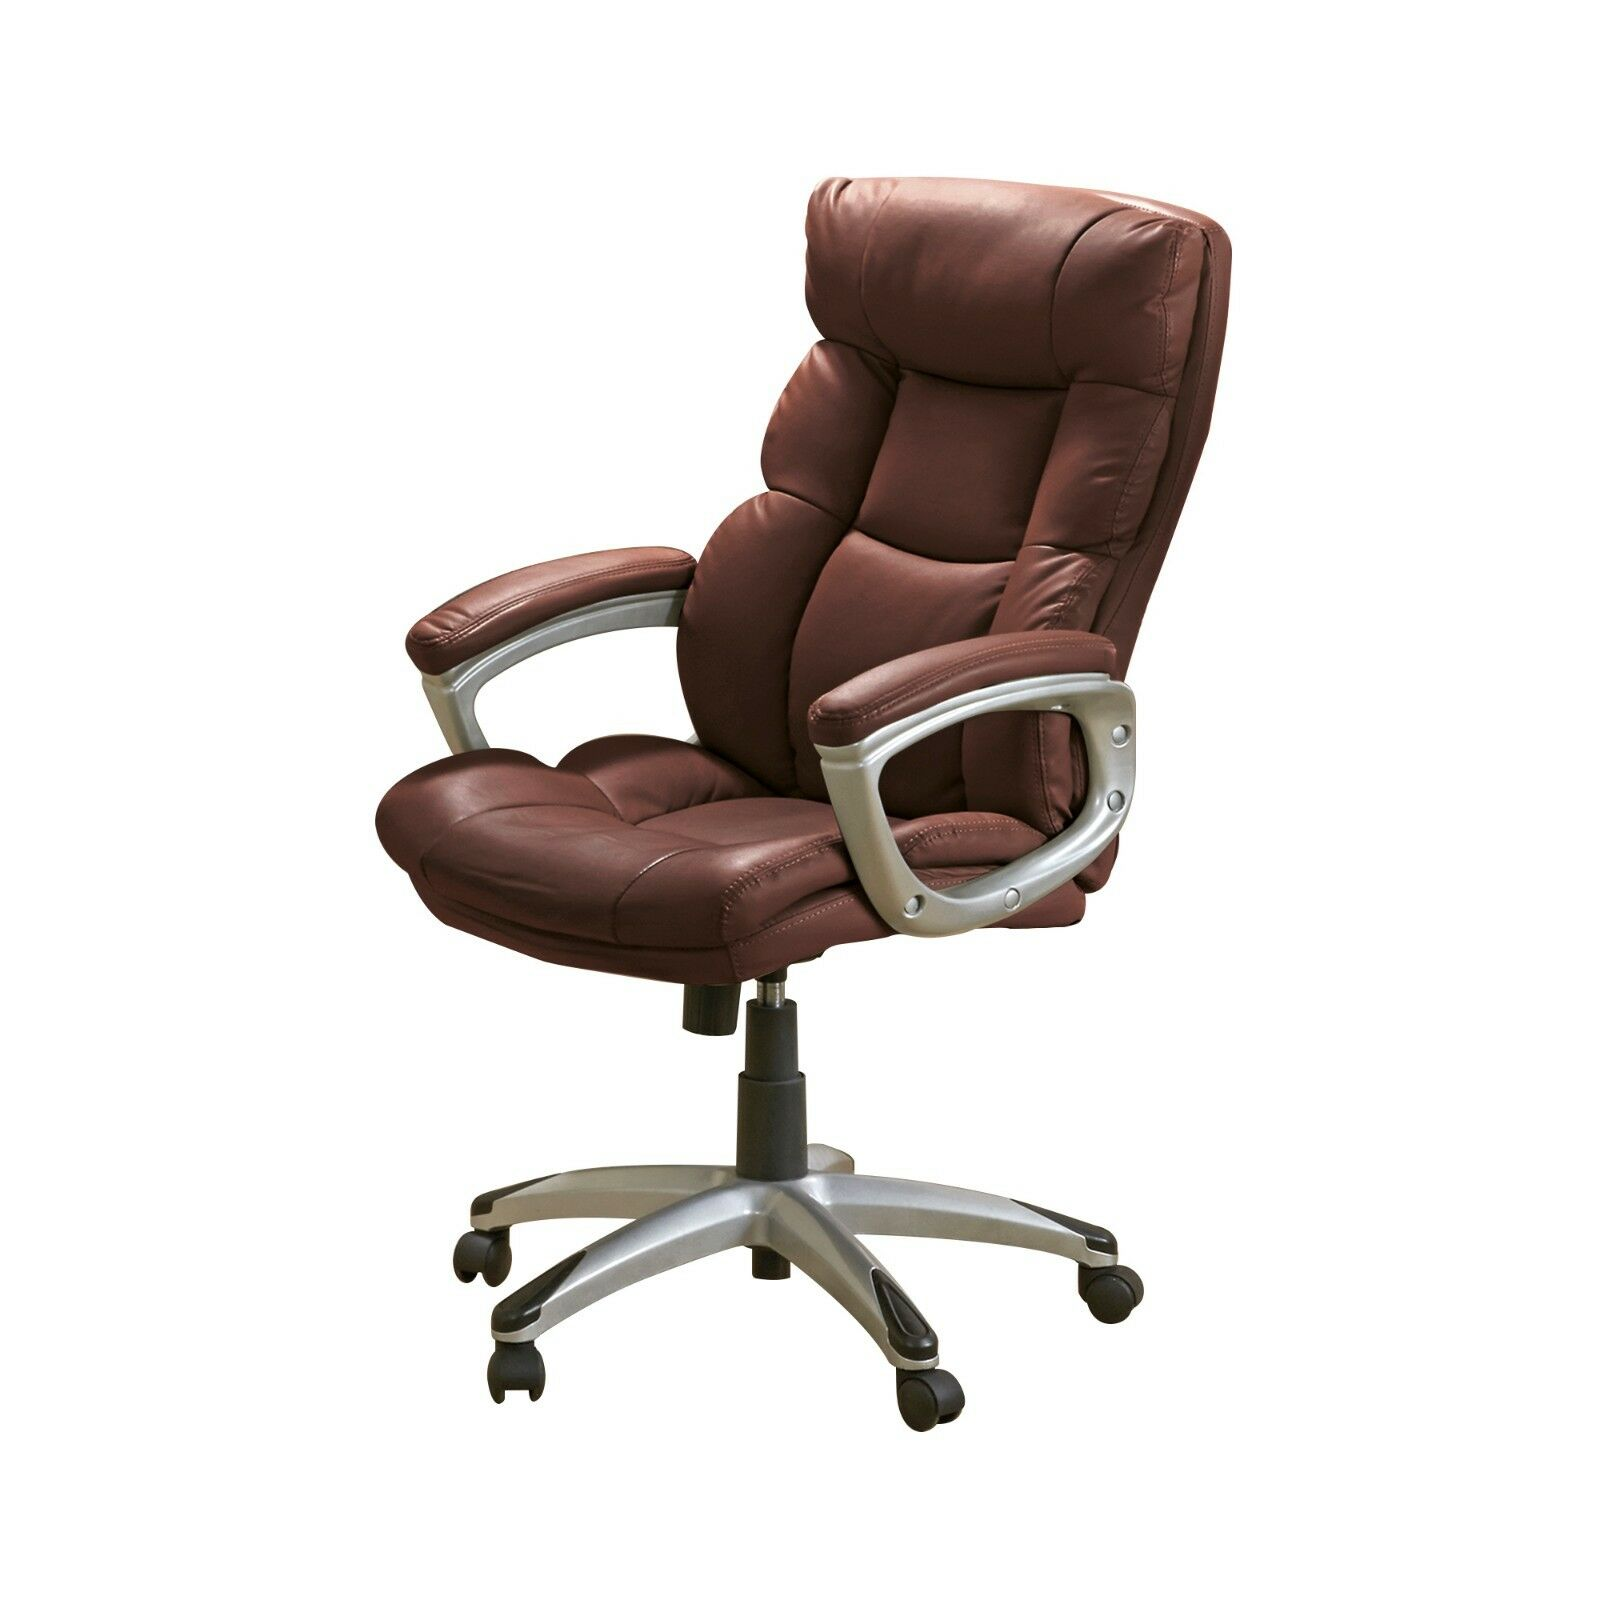 Executive Leather Chair Details About Executive Computer Chair Office Desk Swivel Tilt Leather Furniture High Back New